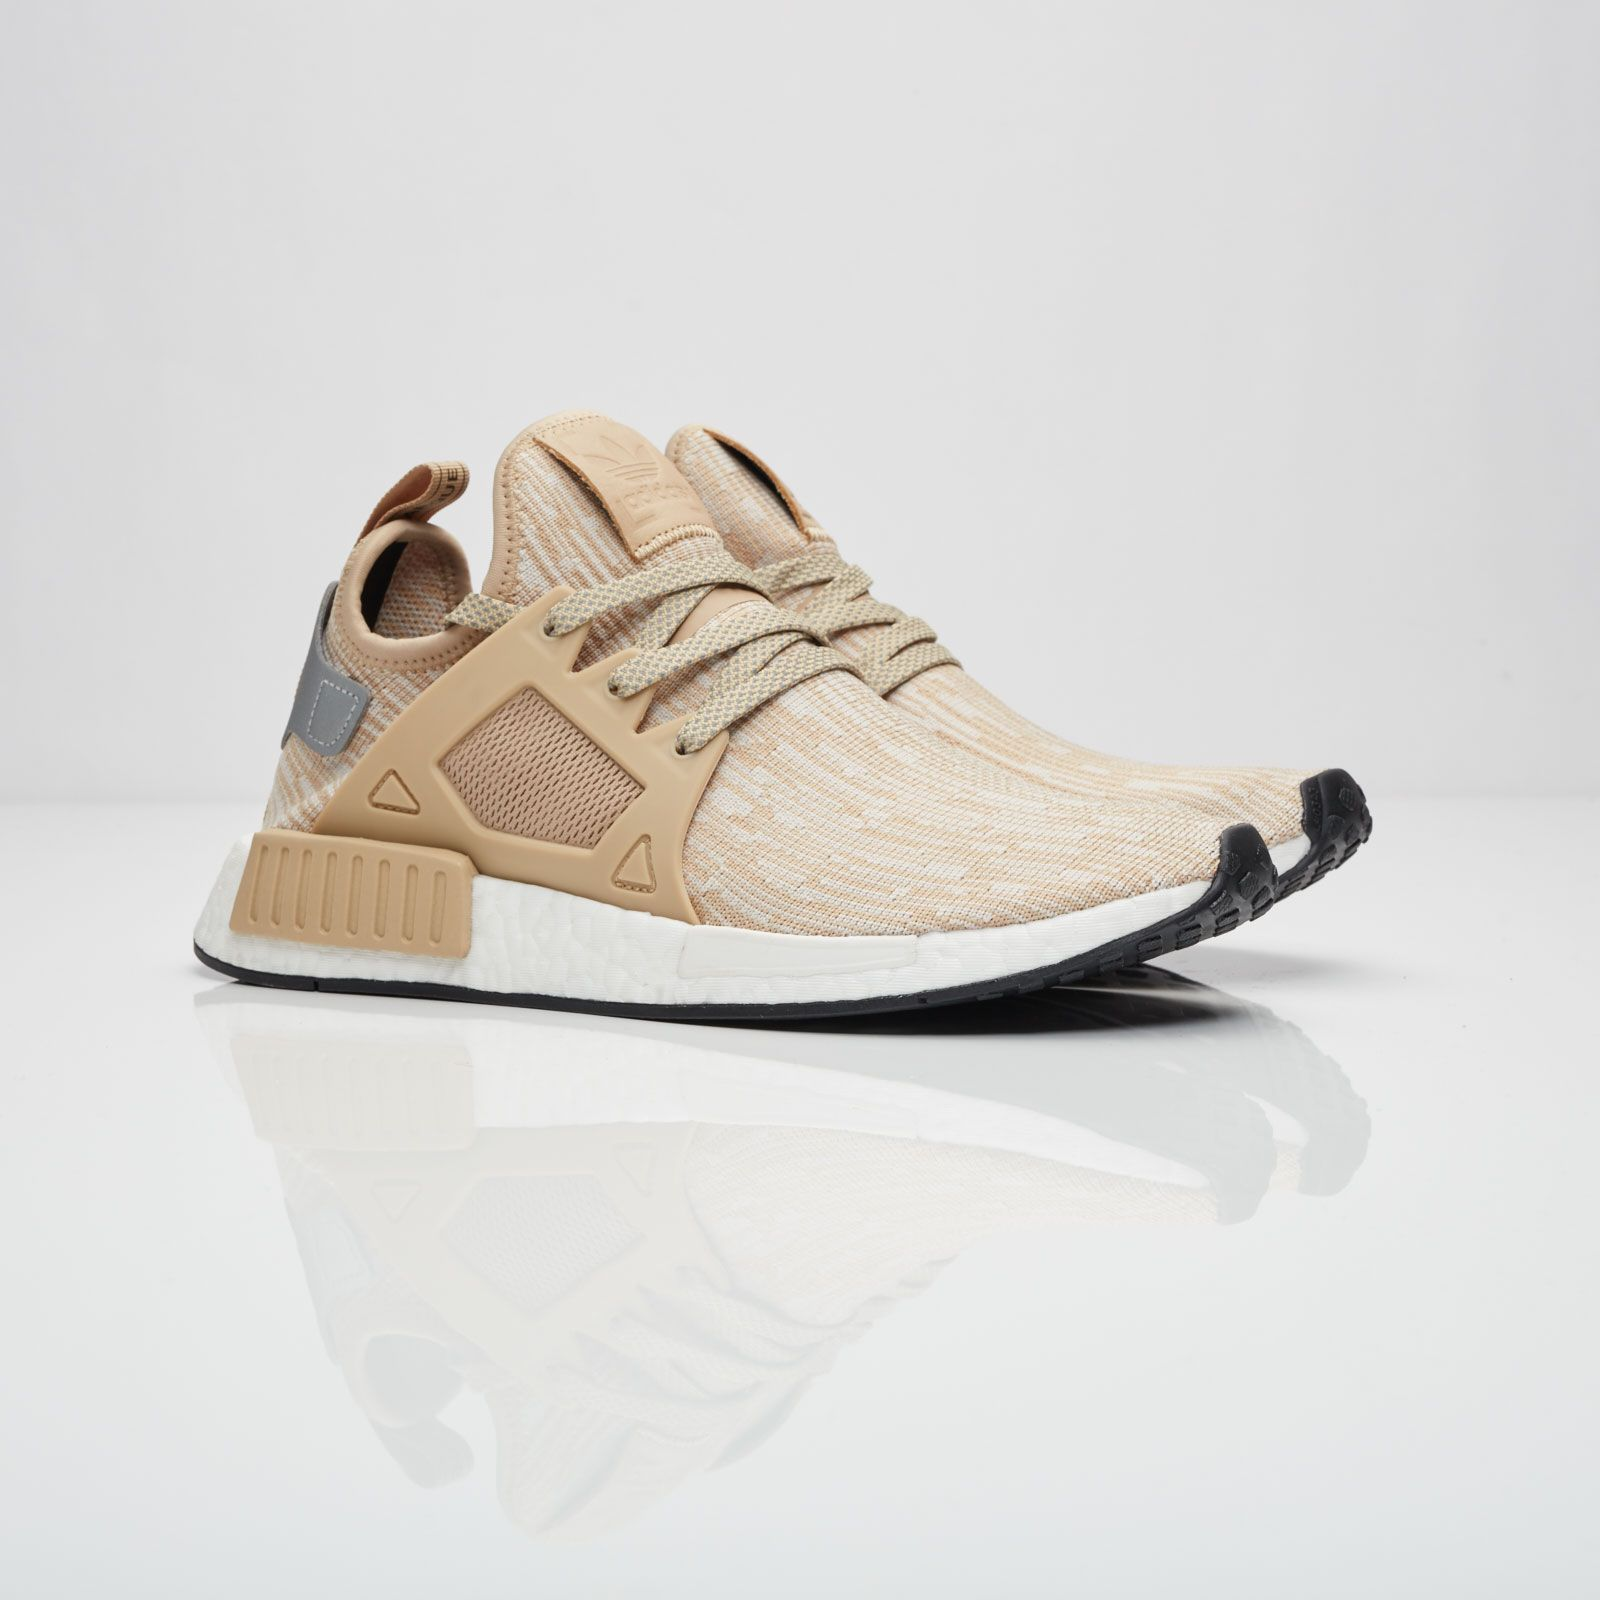 MIDNIGHT ONLINE Adidas #NMD XR1 PK Linen / Core Black Credit :  Sneakersnstuff